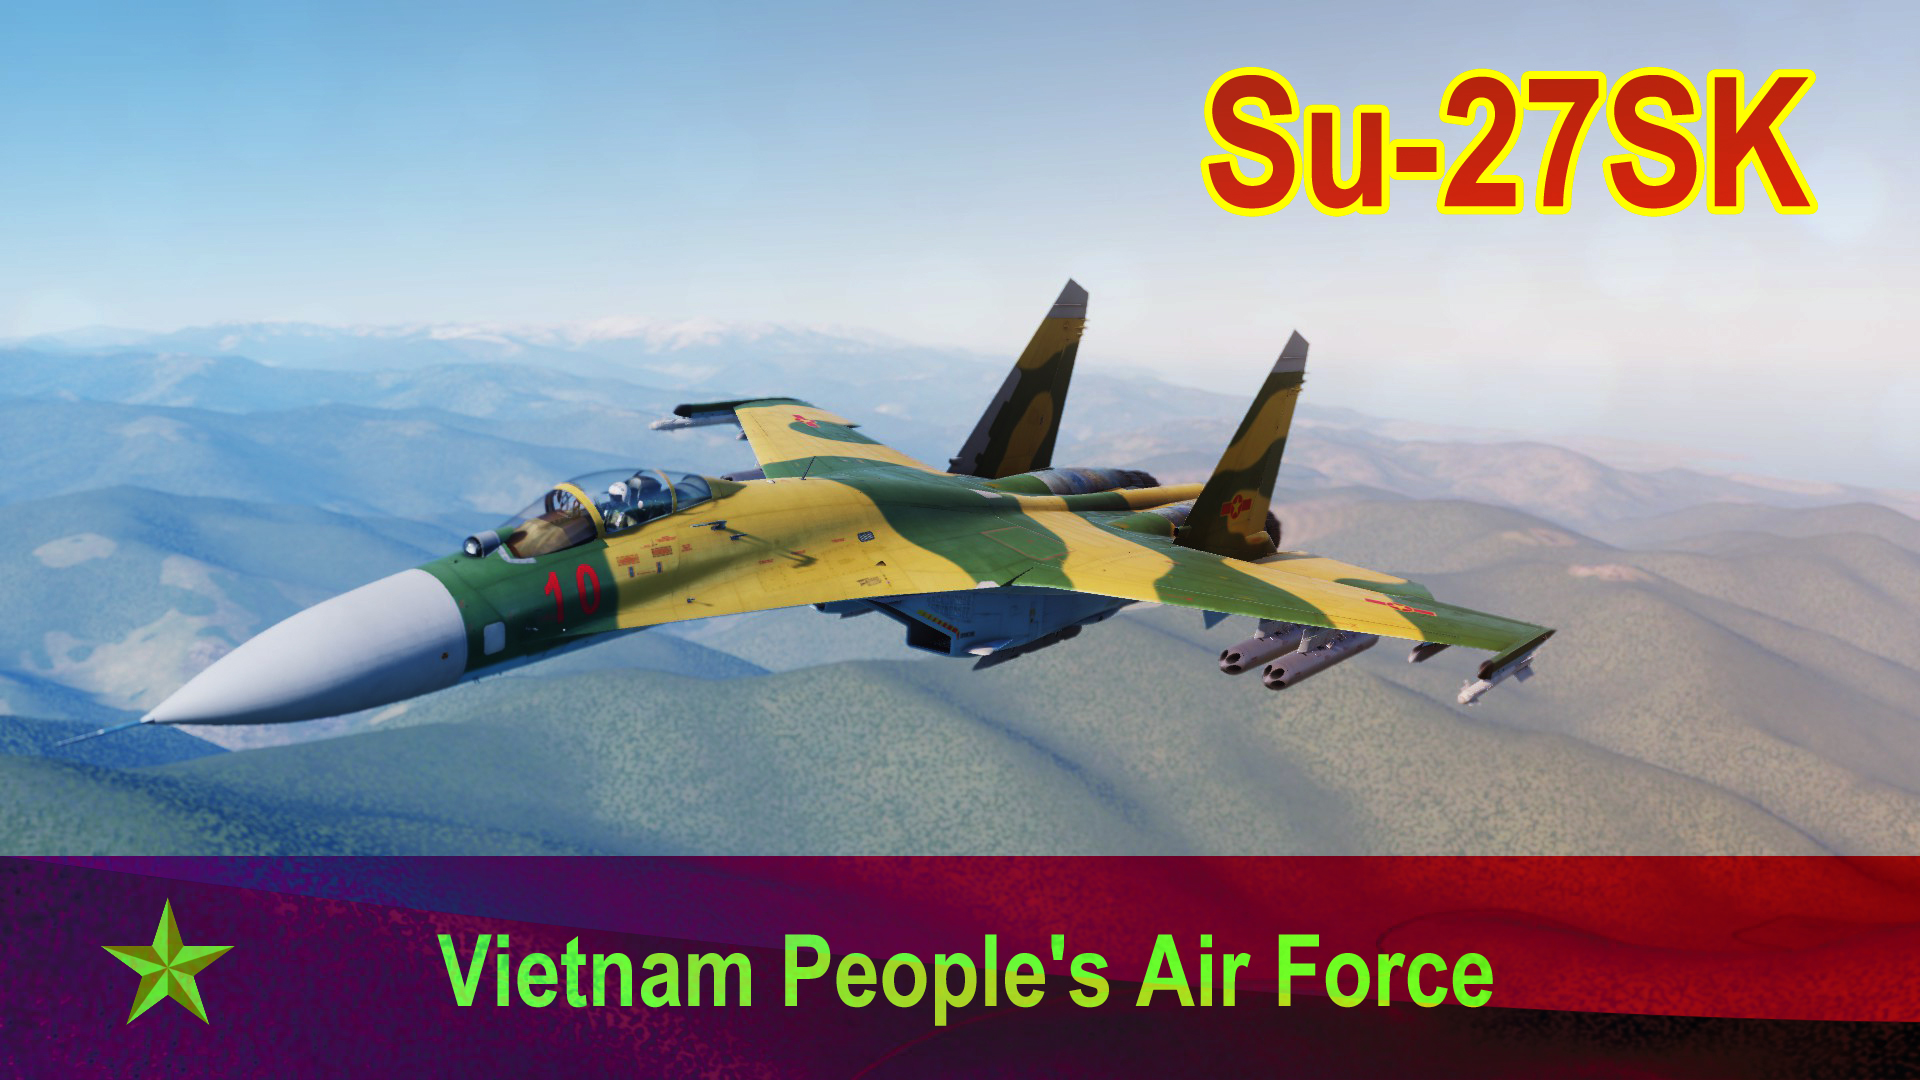 Su-27SK by Vietnam People's Air Force (2019)